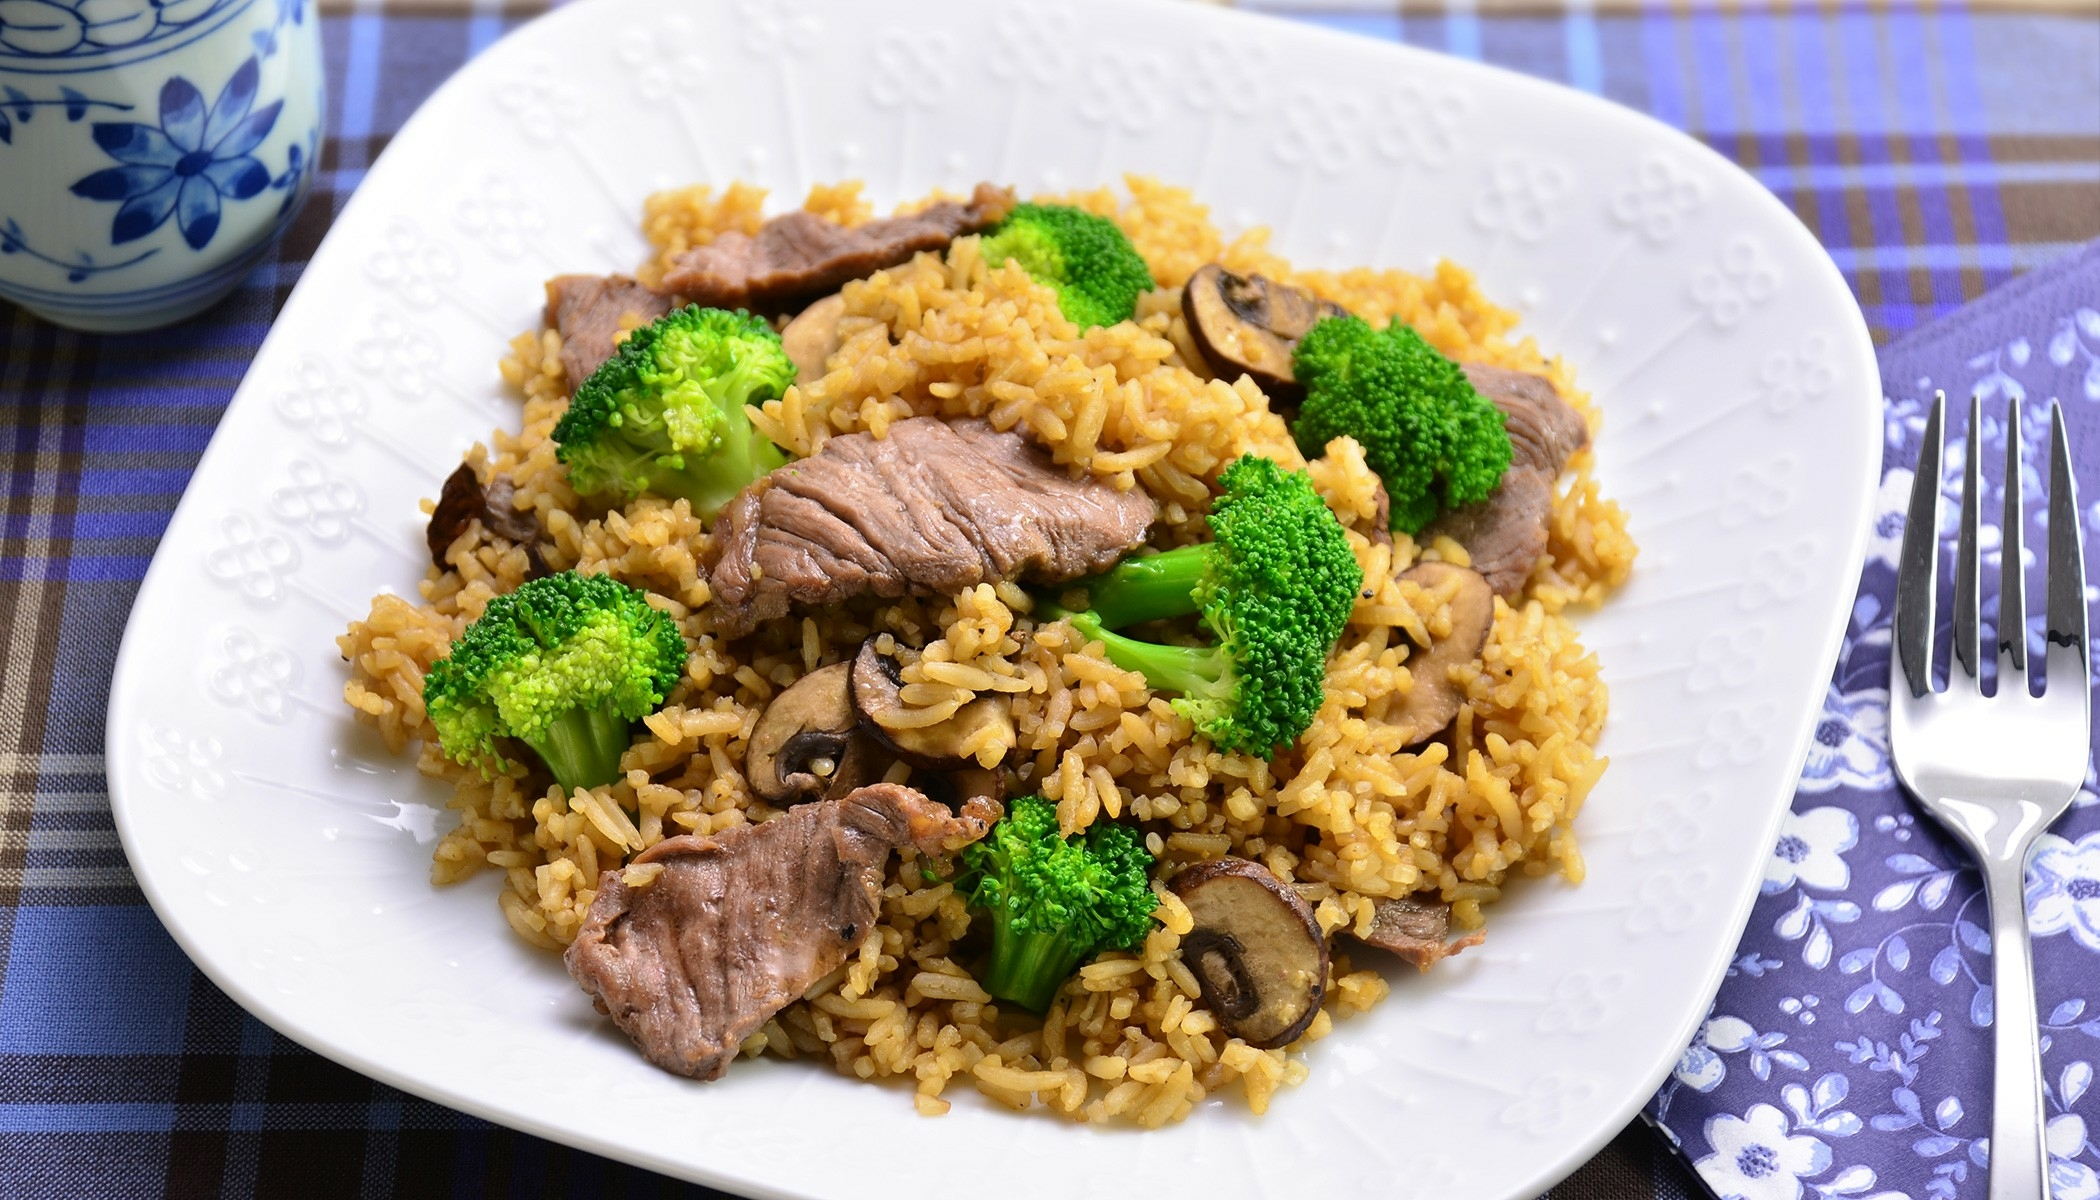 Portabella Mushroom Rice with Beef and Broccoli